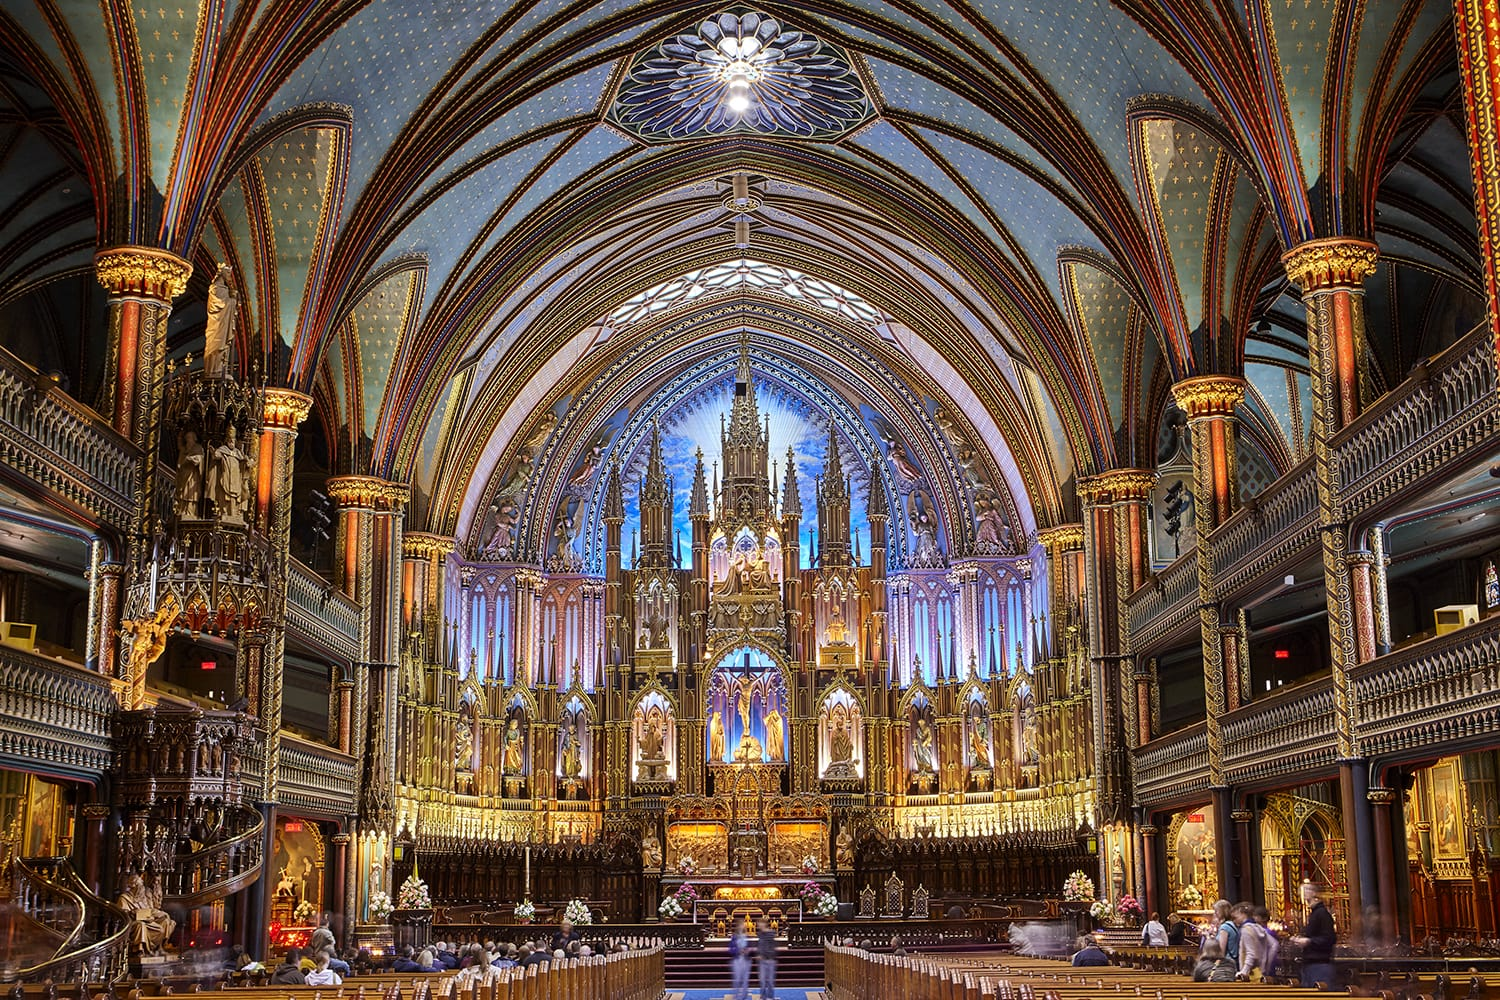 Interior of the Gothic revival Notre Dame basilica in Montreal, Canada